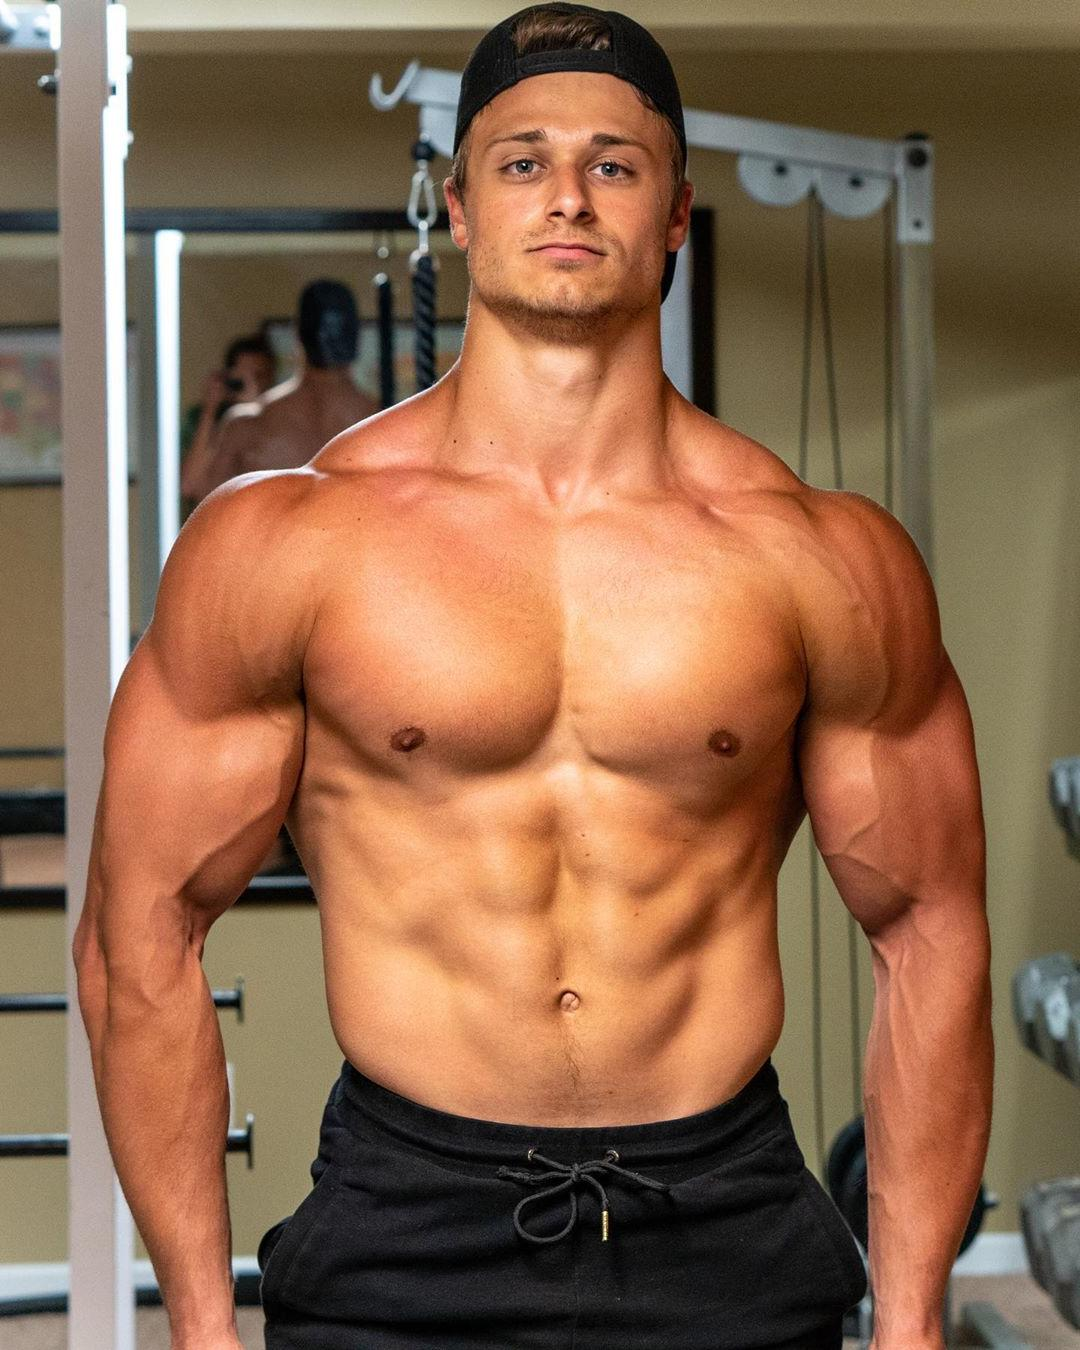 sexy-young-college-bros-shirtless-fit-tanned-dudes-veiny-biceps